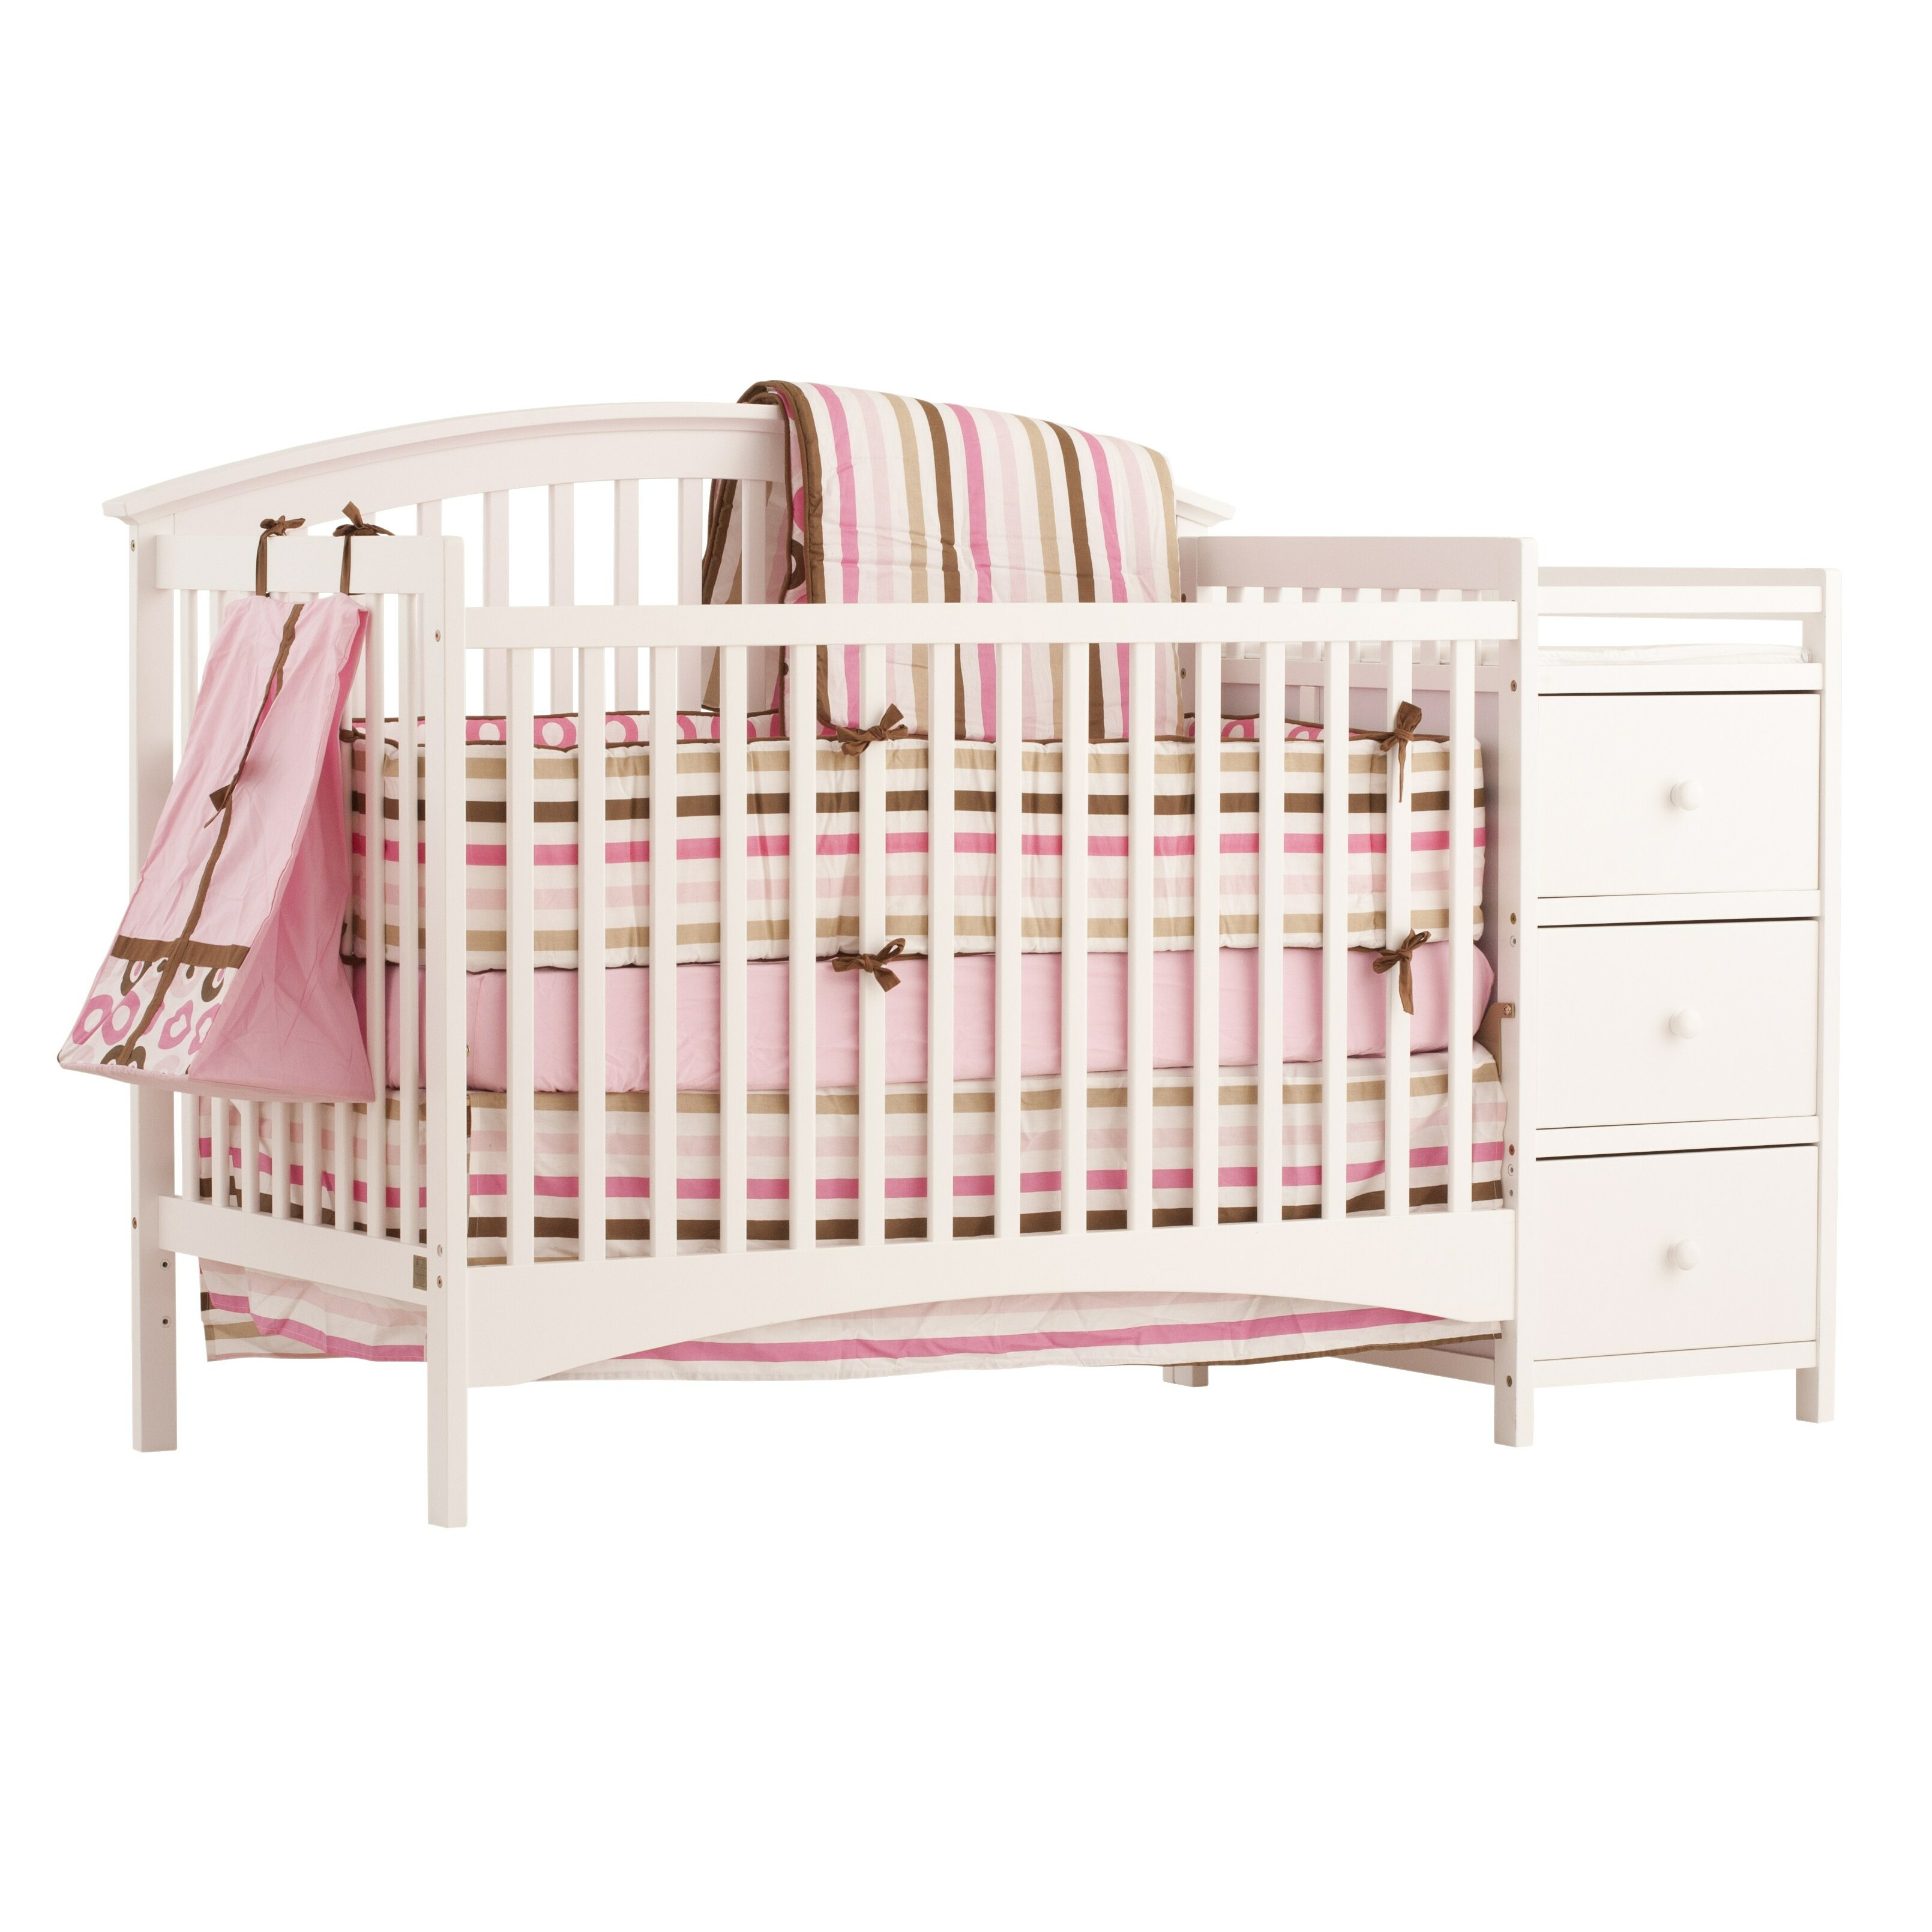 Crib for sale louisville ky - Storkcraft Bradford 4 In 1 Convertible Crib And Changer Combo